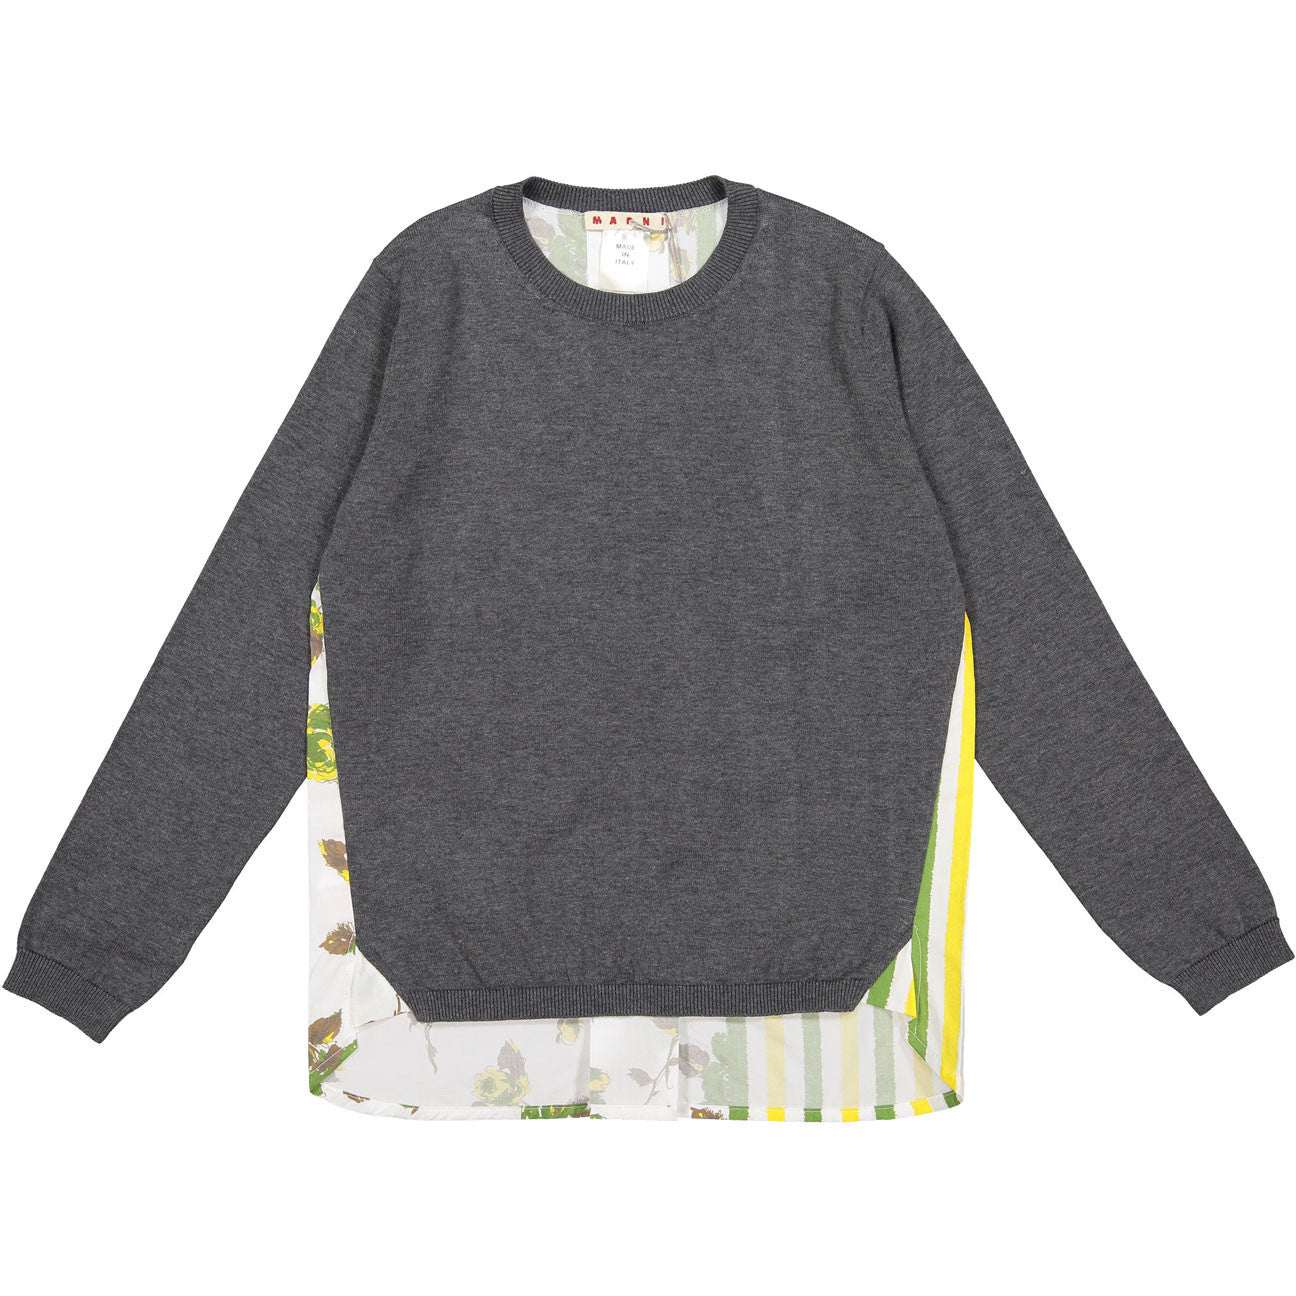 Marni Eclipse Sweater - Ladida